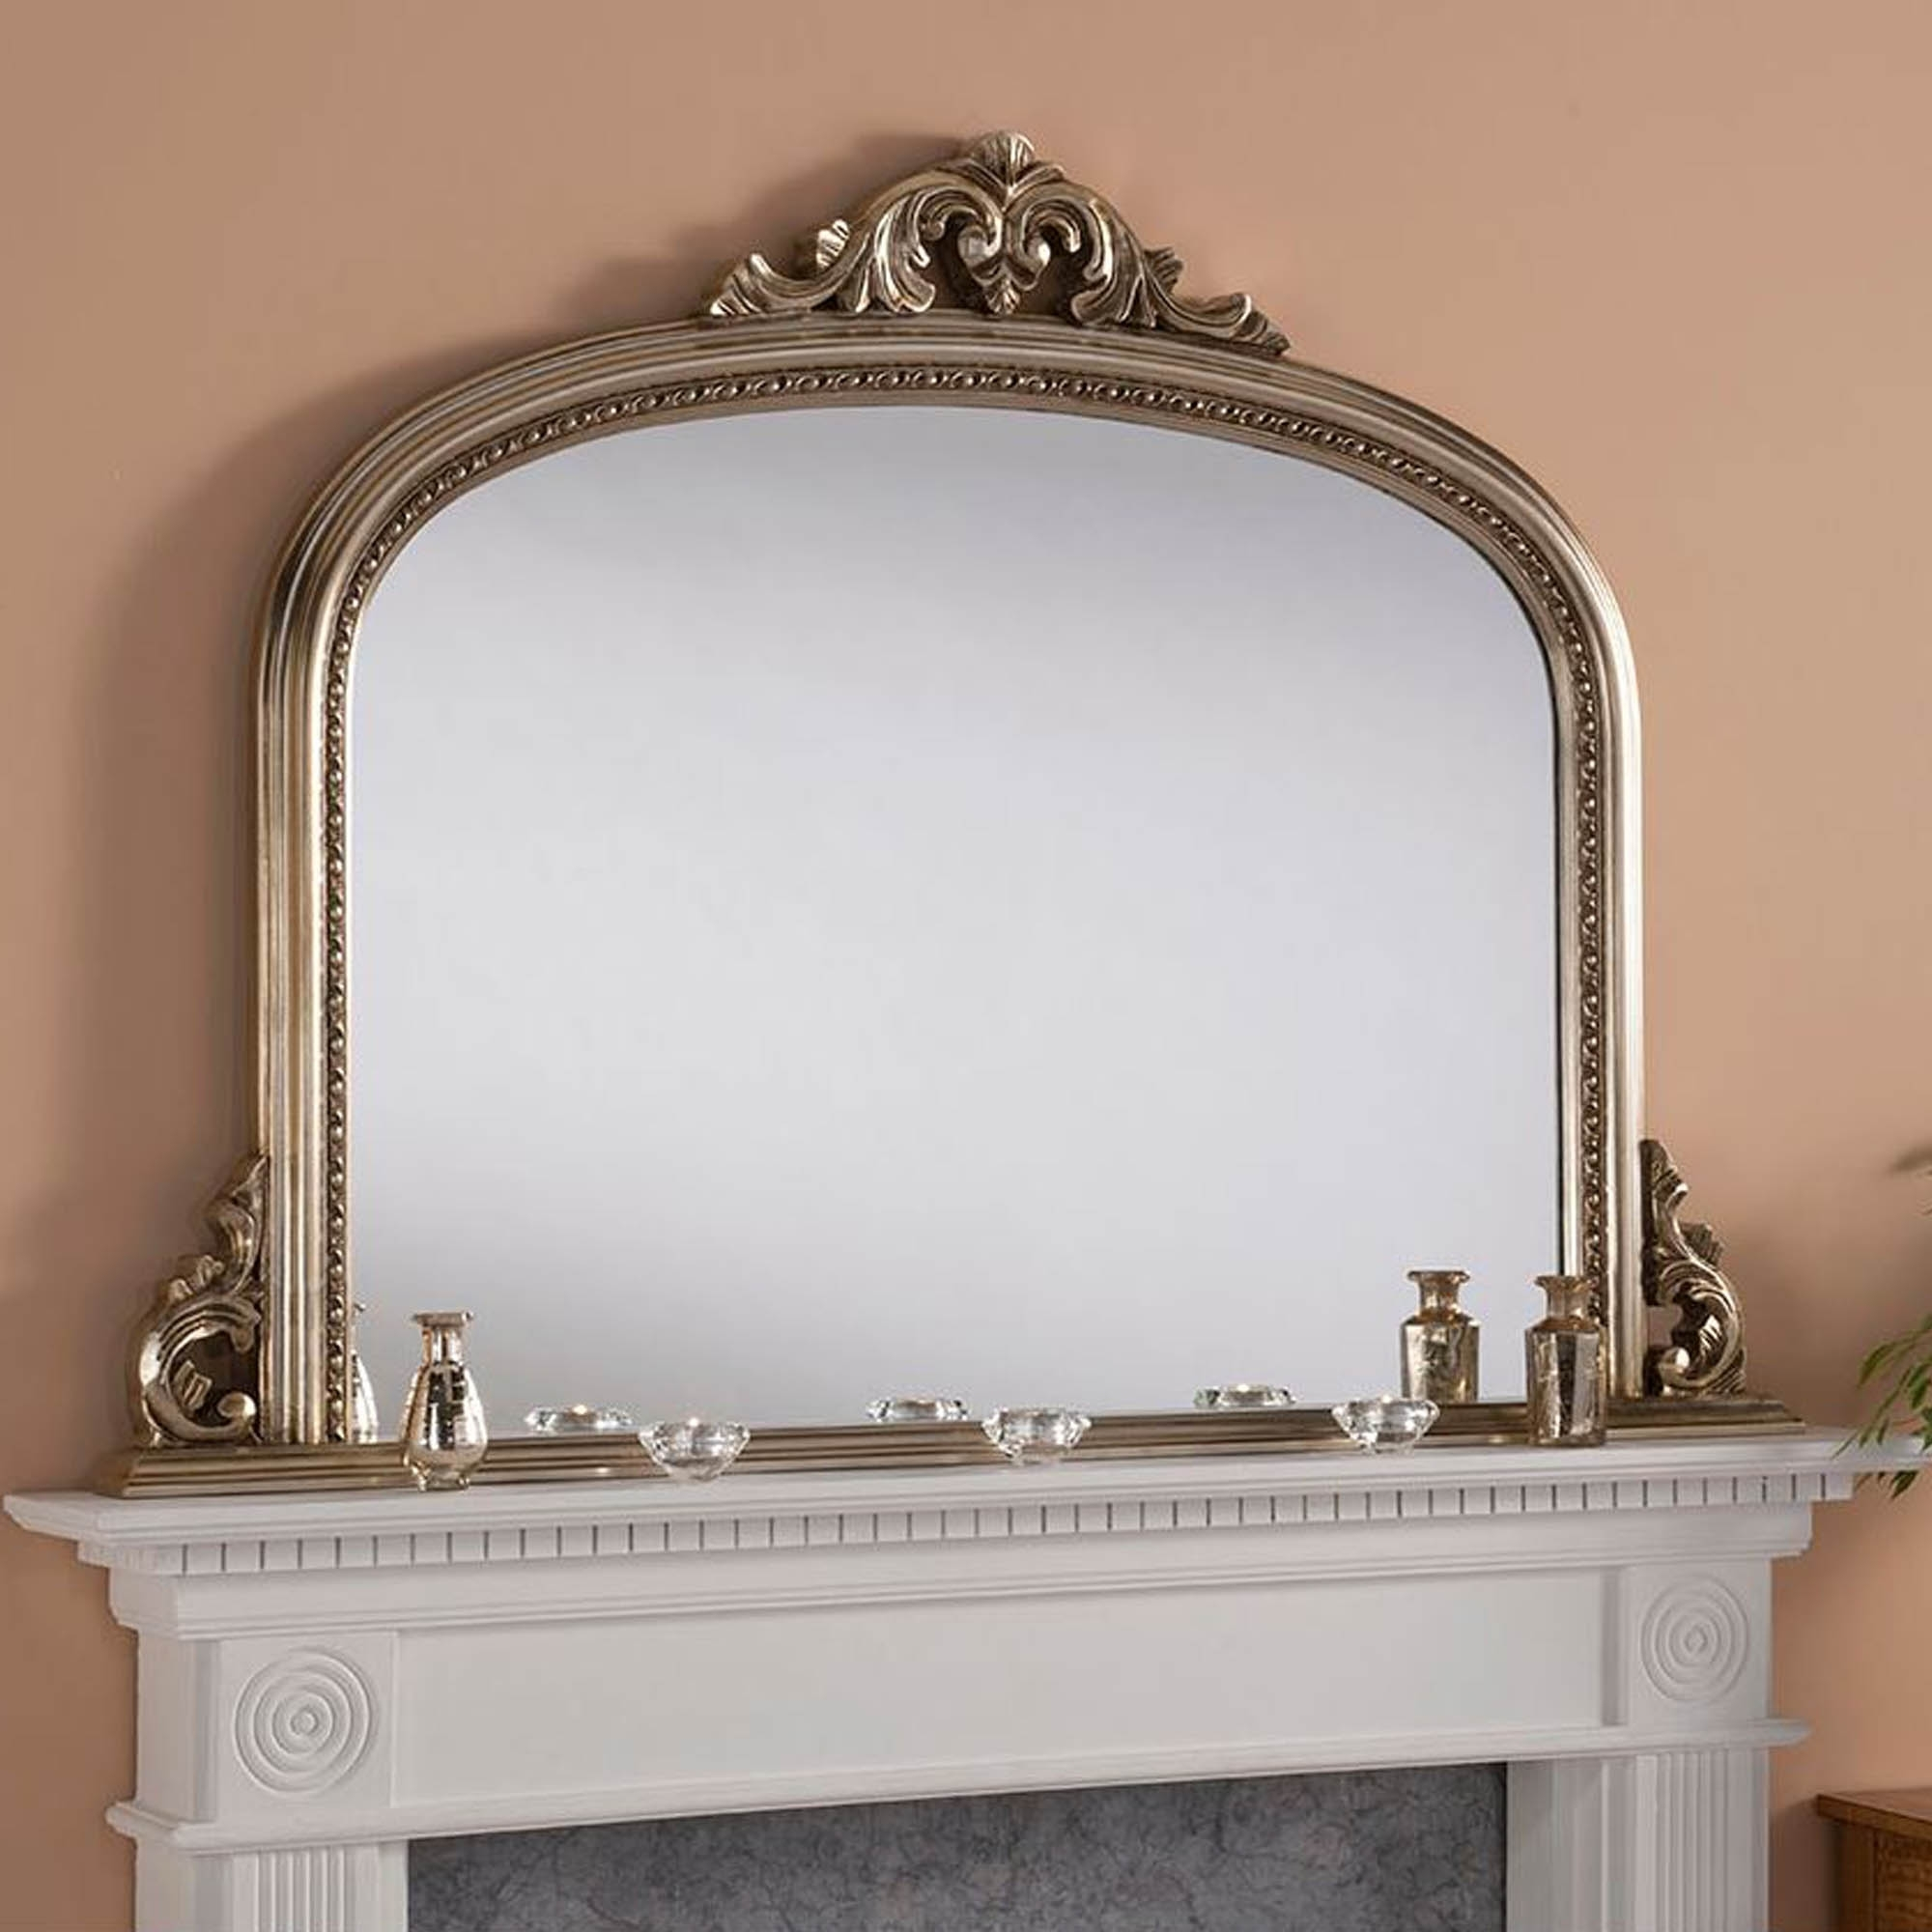 Antique French Style Silver Overmantle Mirror Homesdirect365